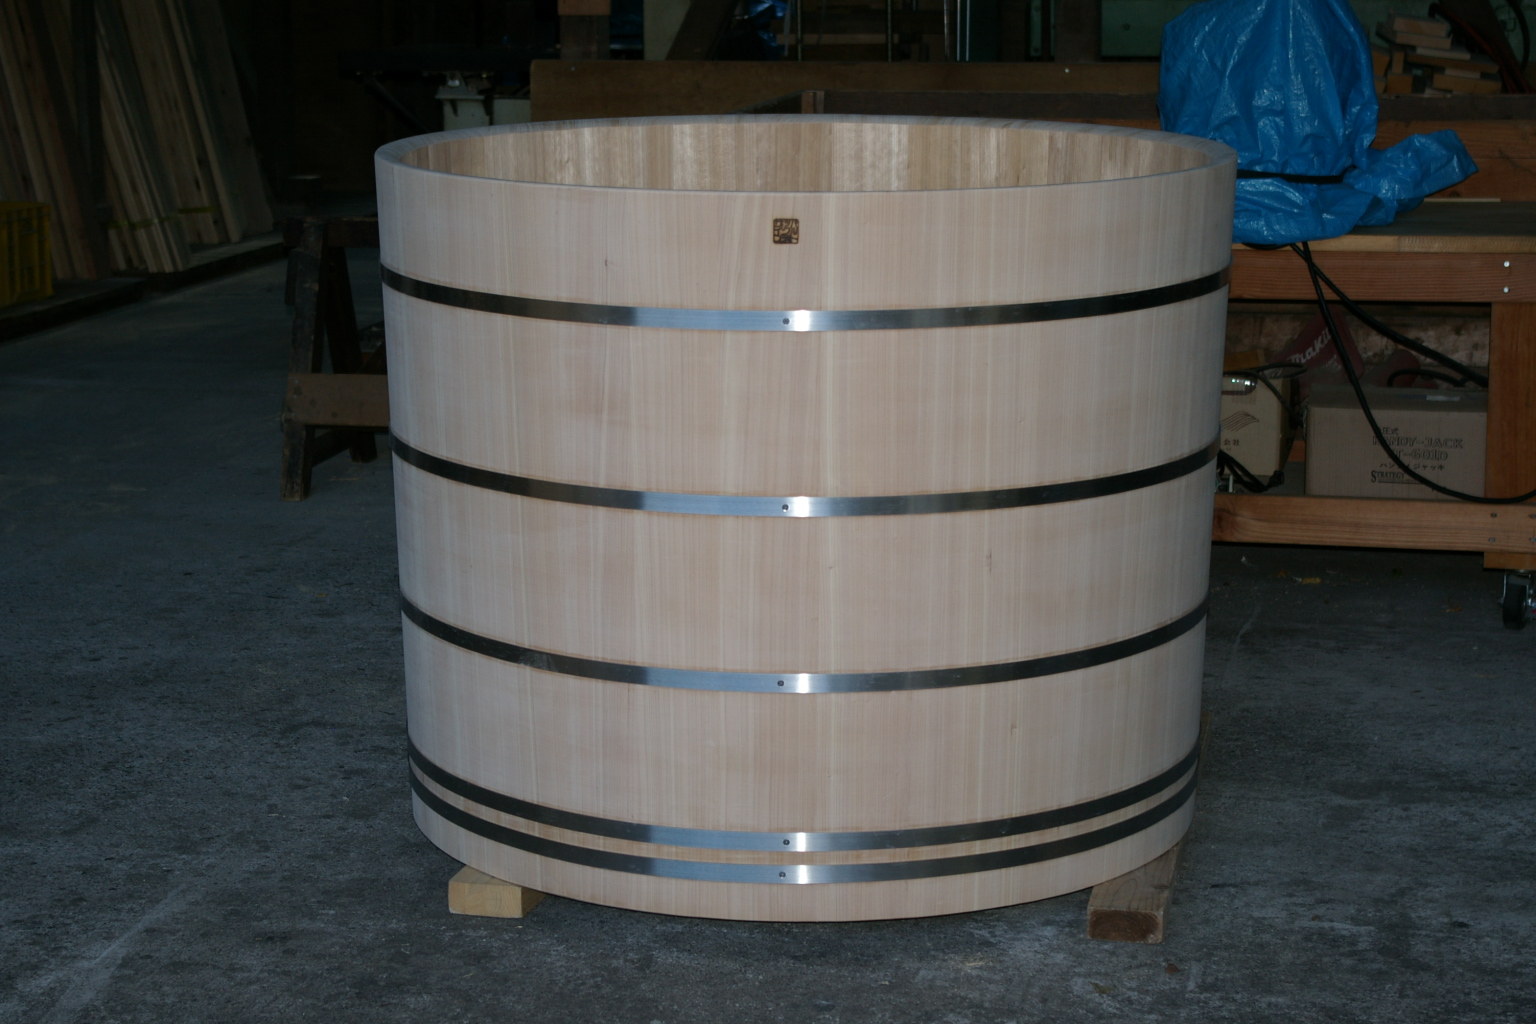 Round tub for long island japanese ofuro bathtubs by for Extra long soaking tub